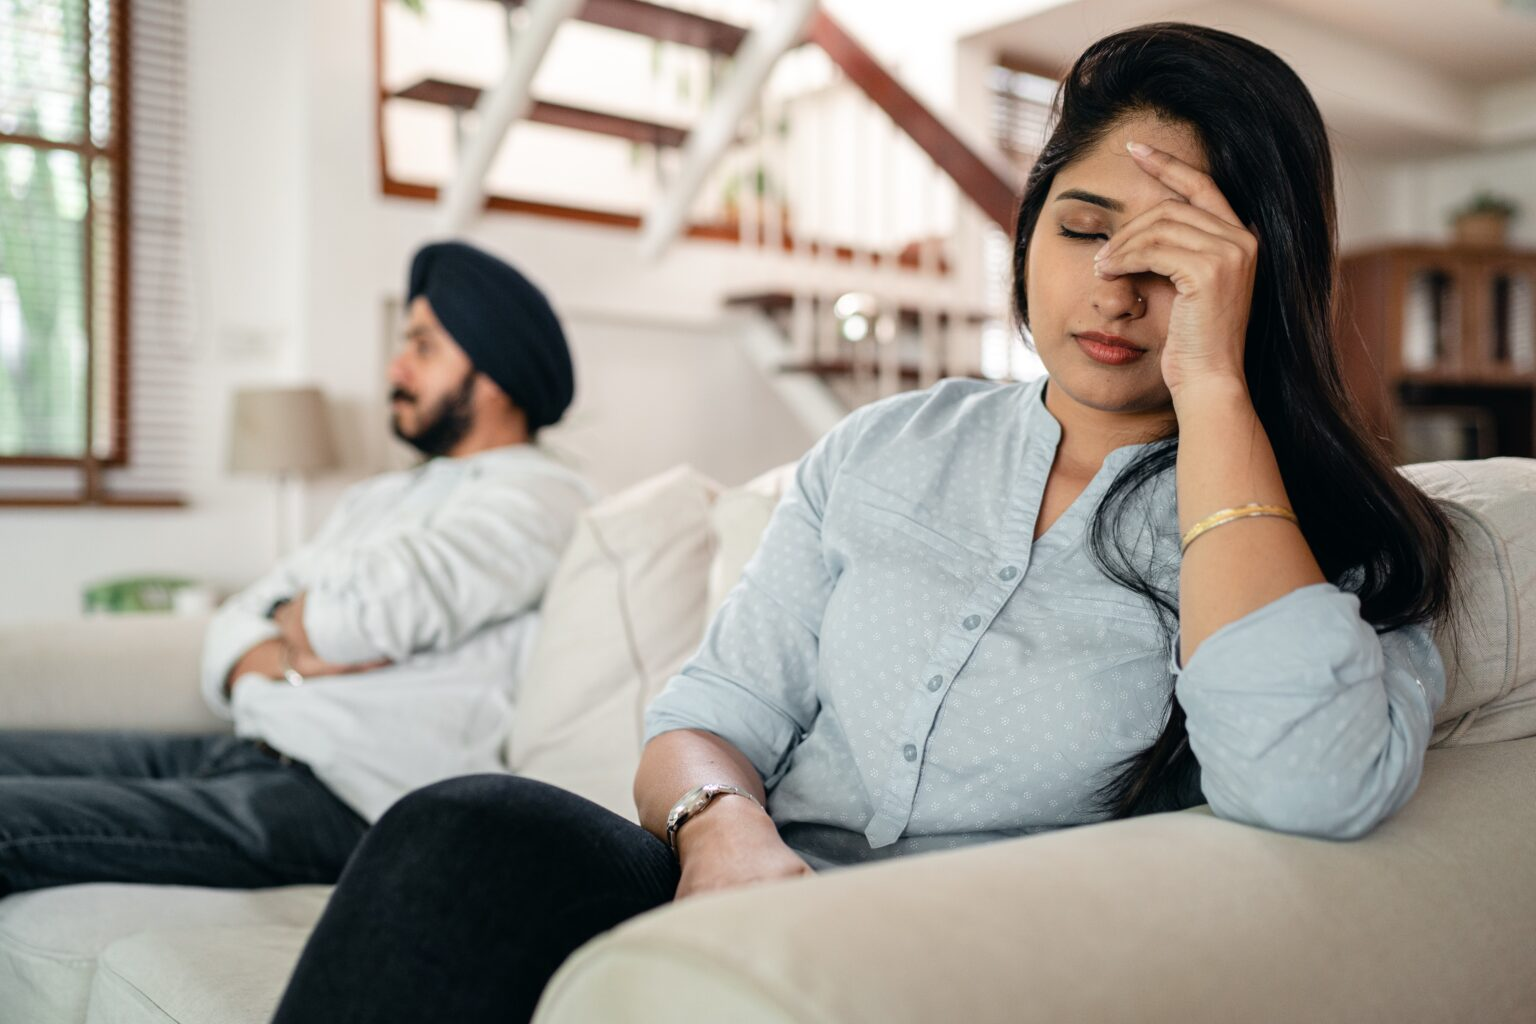 sikh man in a black turban sat on a sofa with a woman who is holding her head in her hands, illustrating the atrcilve can stress cause infertlity